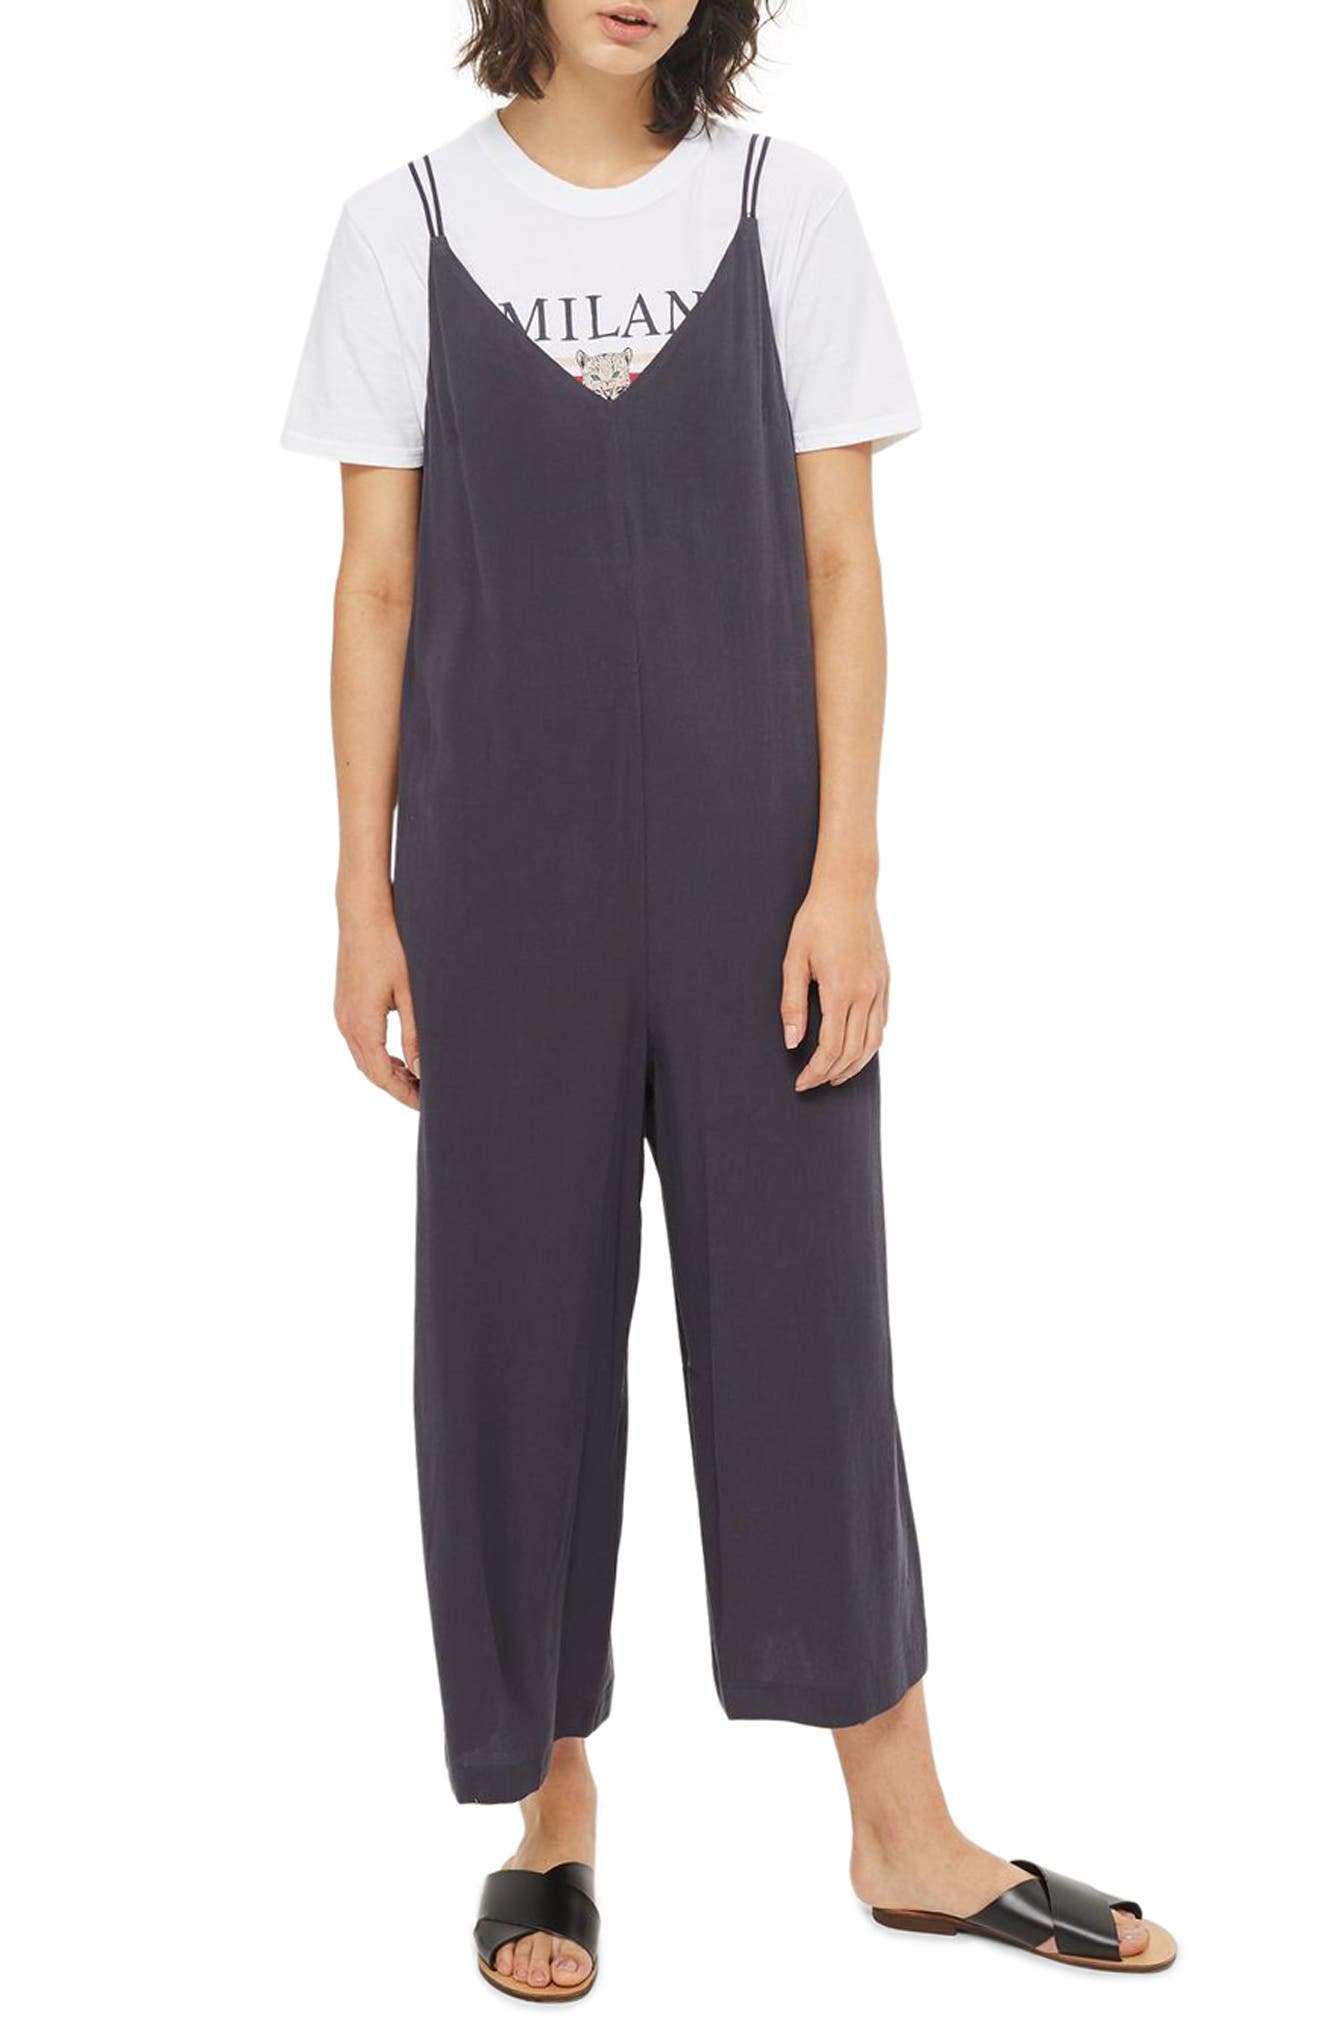 Topshop Molly Tie Back Jumpsuit